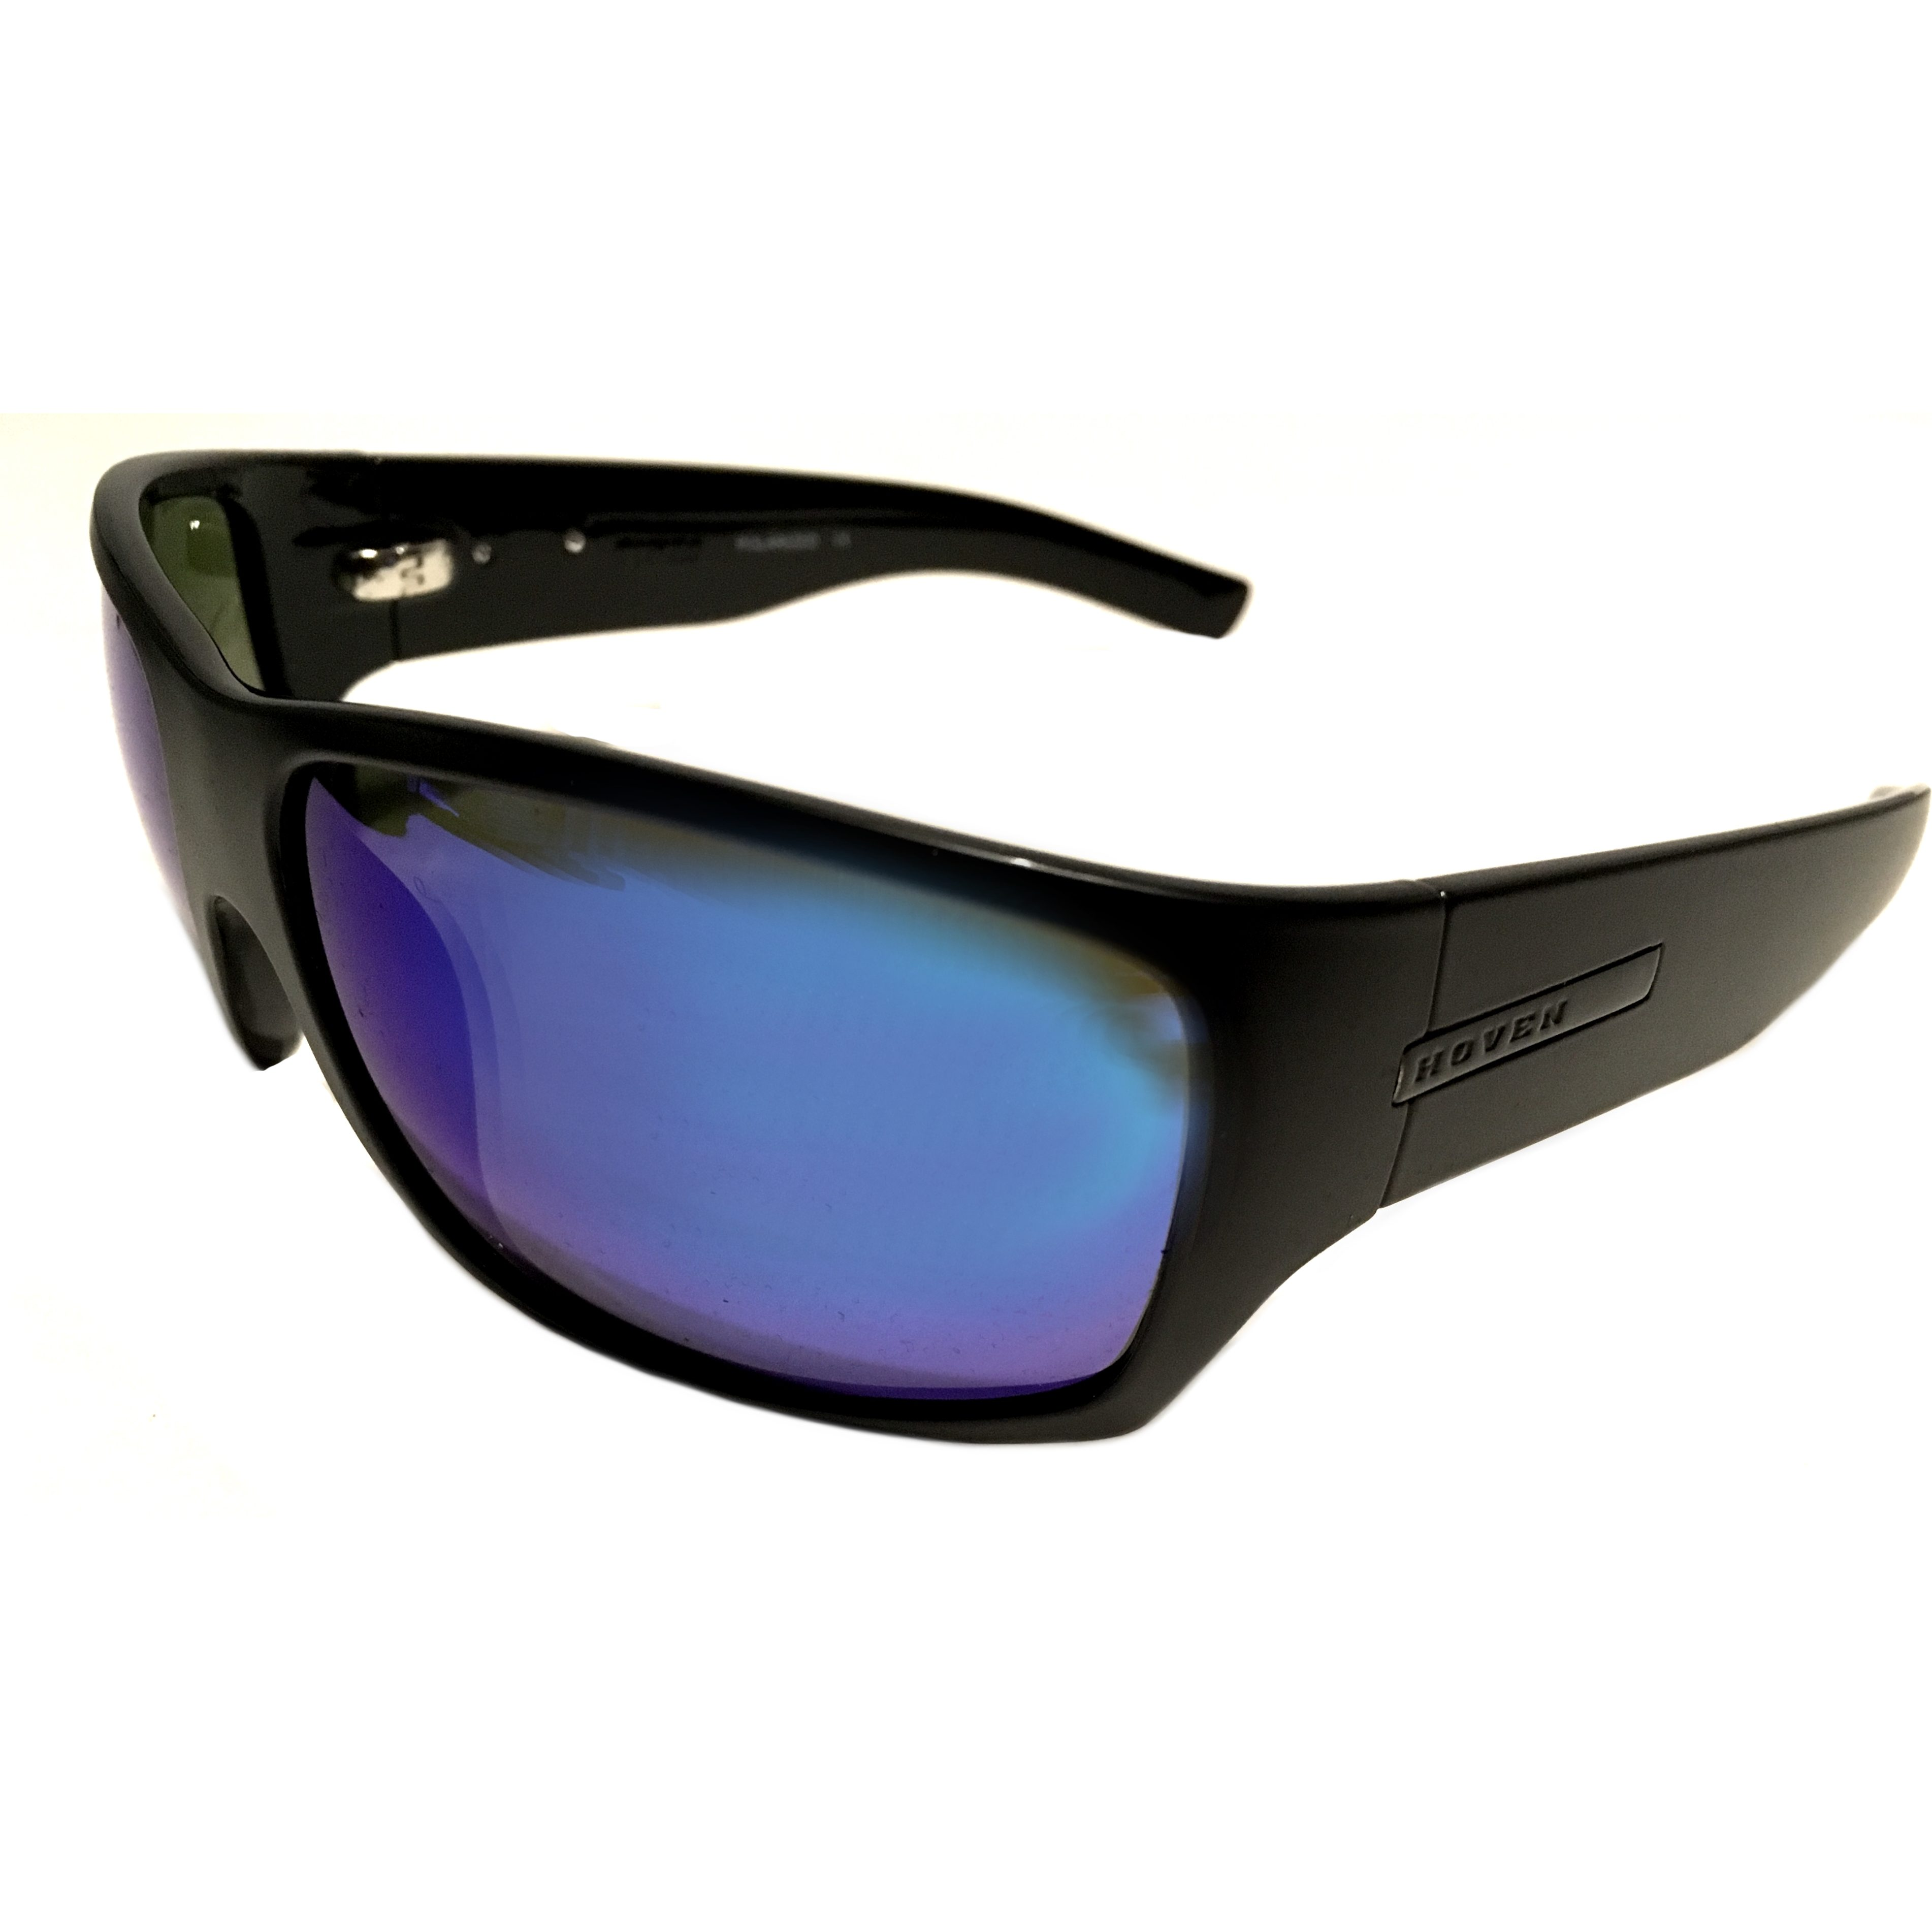 Hoven Vision Times Sunglasses - Black - ANSI Compliant - POLARIZED Tahoe Blue